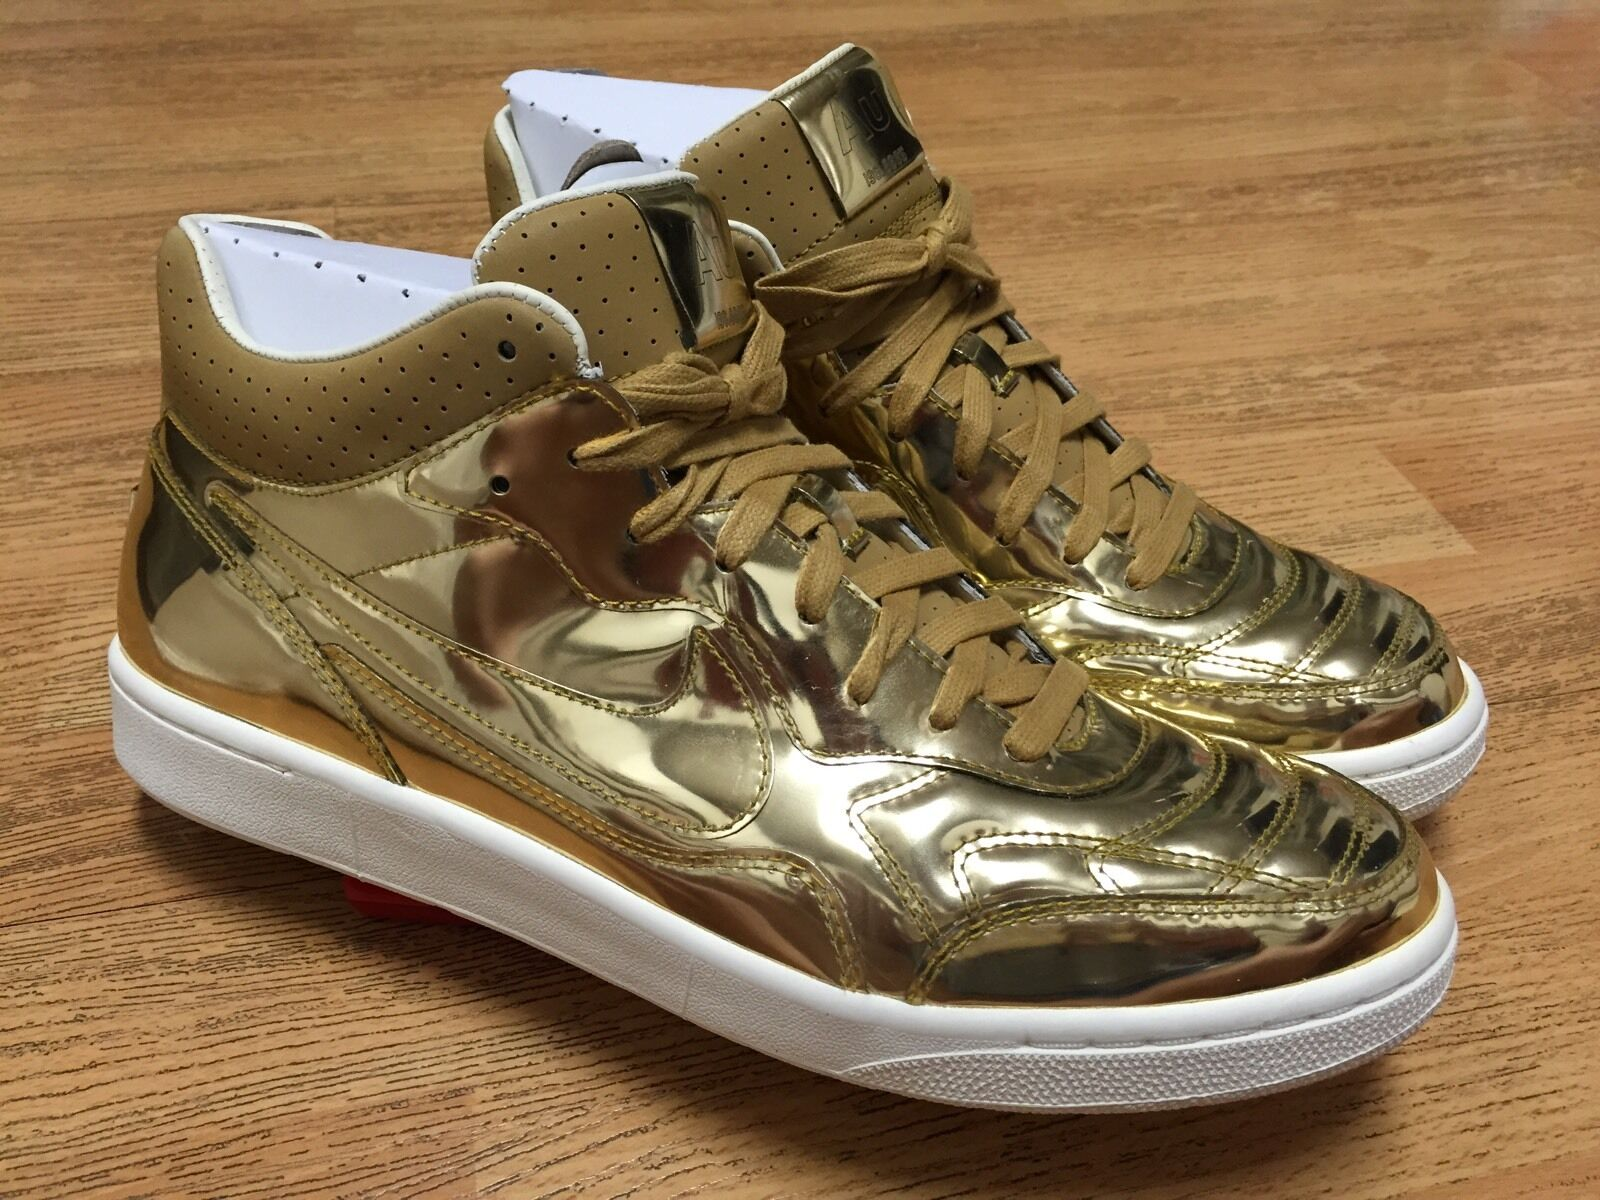 NIKE NSW TIEMPO '94 MID SP LIQUID GOLD SOCCER FOOTBALL SHOES 10.5 WORLD CUP NEW